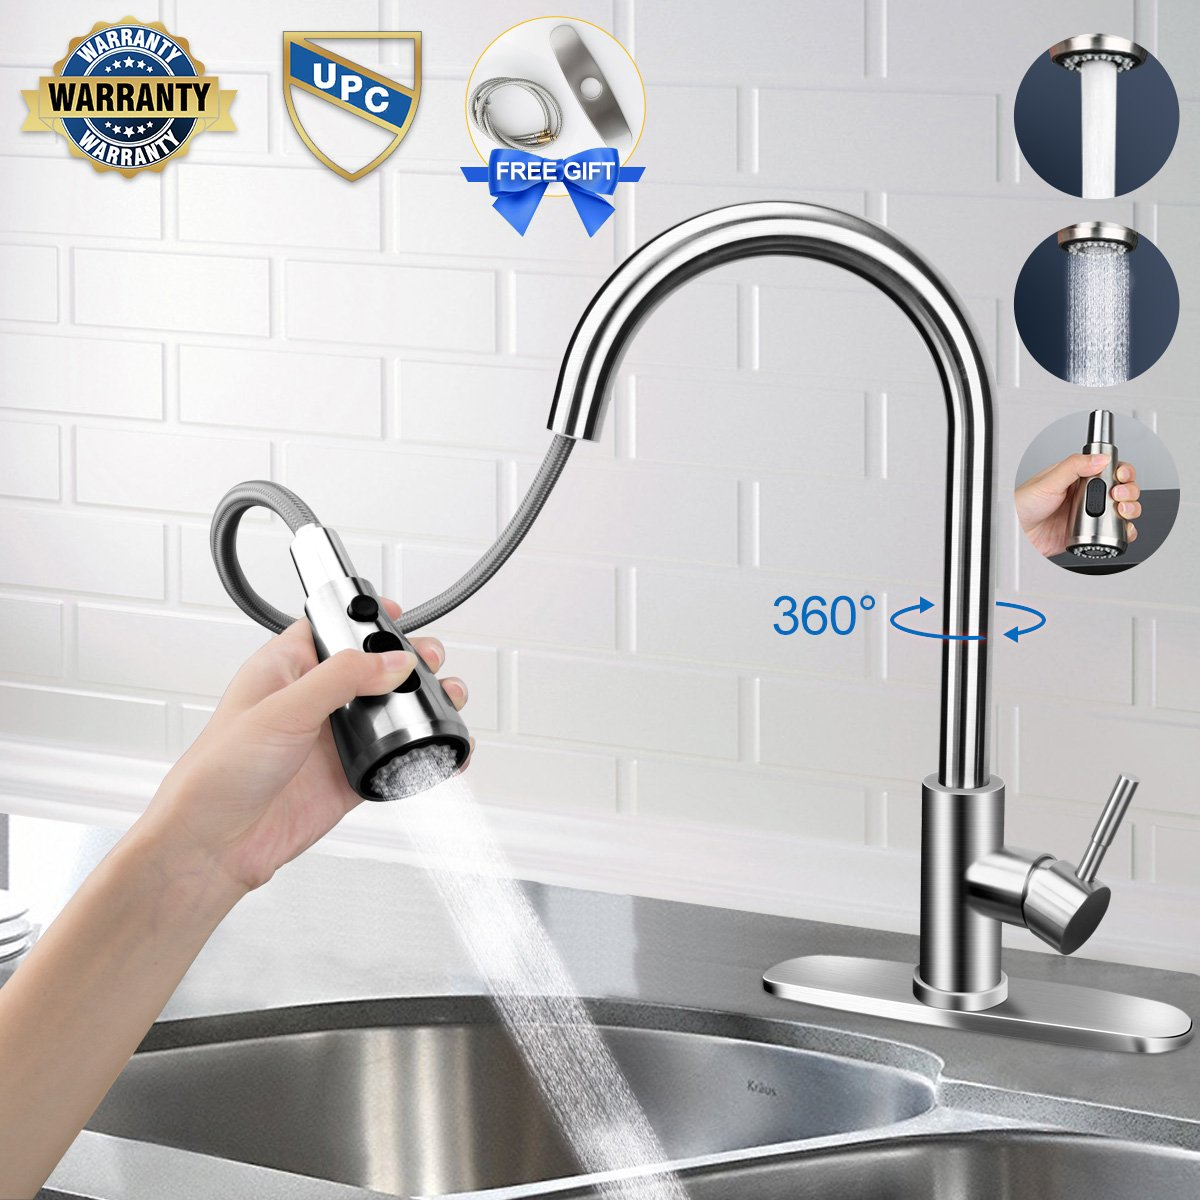 Kitchen faucet, Kitchen Faucets with Pull Down Sprayer Free Gift for Deck Plate and Water Hose. Easy to Stall, Fit for 1 or 3 Hole, Lead-Free Brushed Nickel Kitchen Sink Faucet with Pull Down Sprayer